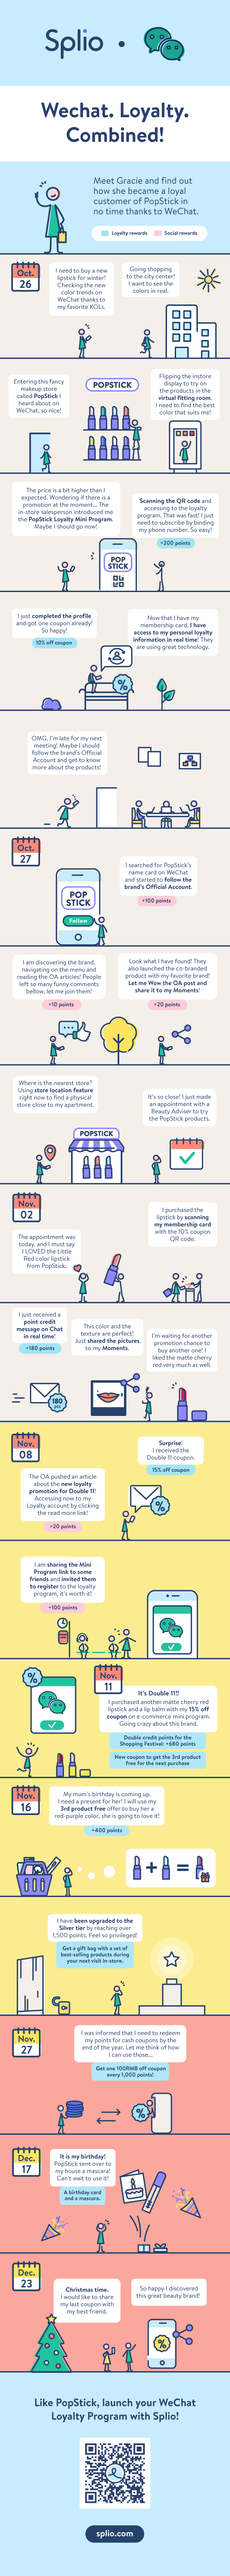 Infographic_wechat-loyalty-journey